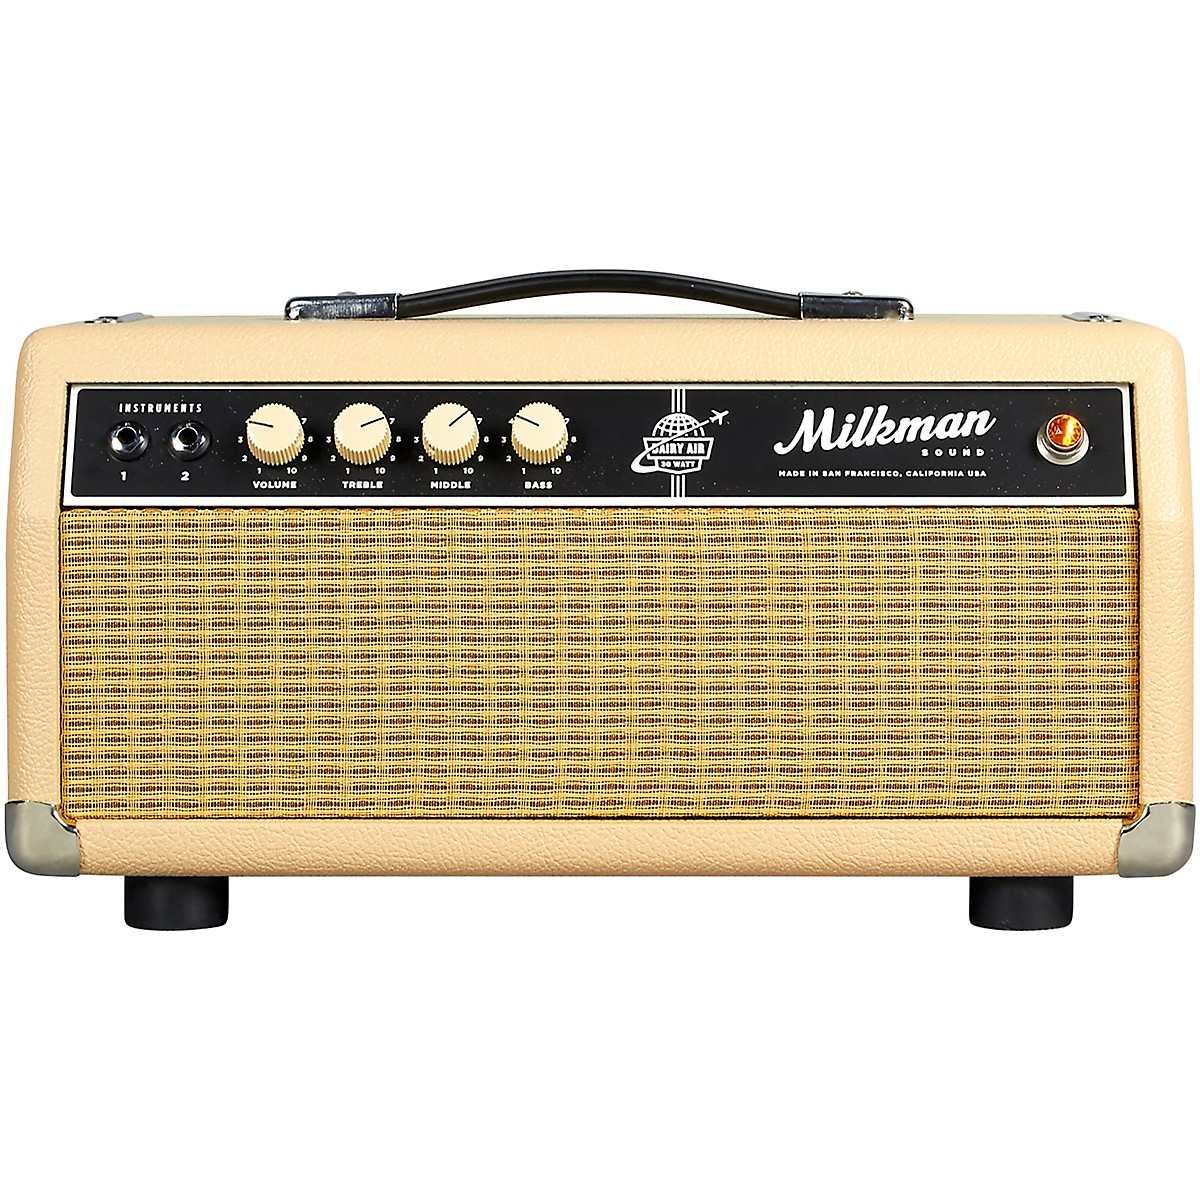 Milkman Sound 30W Dairy Air 30W Tube Guitar Amp Head